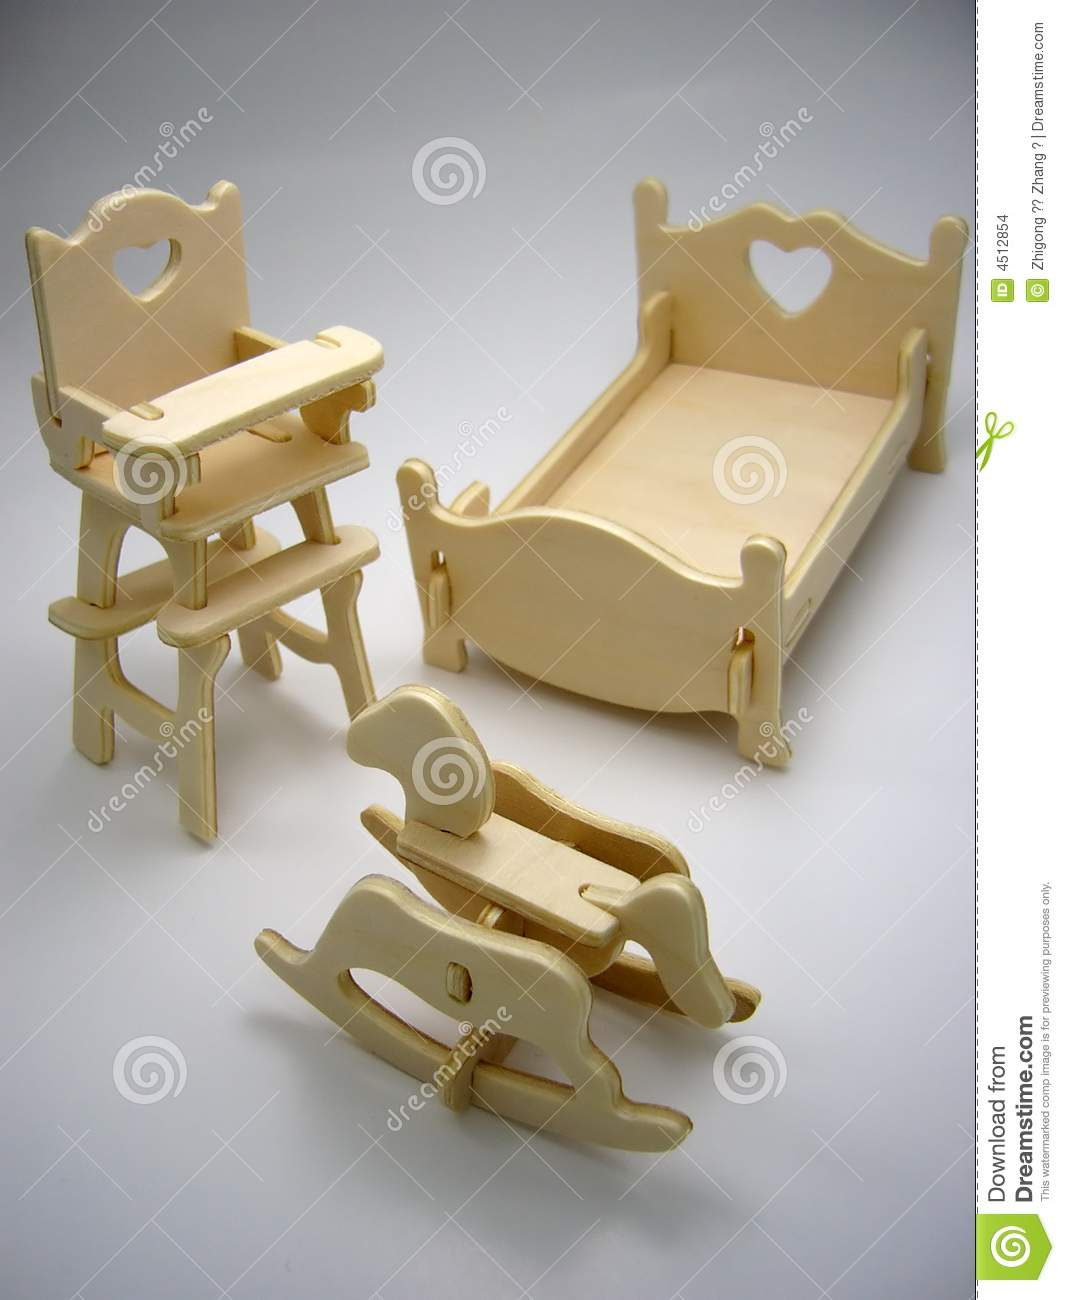 Kids Bedroom Furniture Kids Wooden Toys Online: Wooden Toy Furniture Of Children`s Bedroom Stock Photo